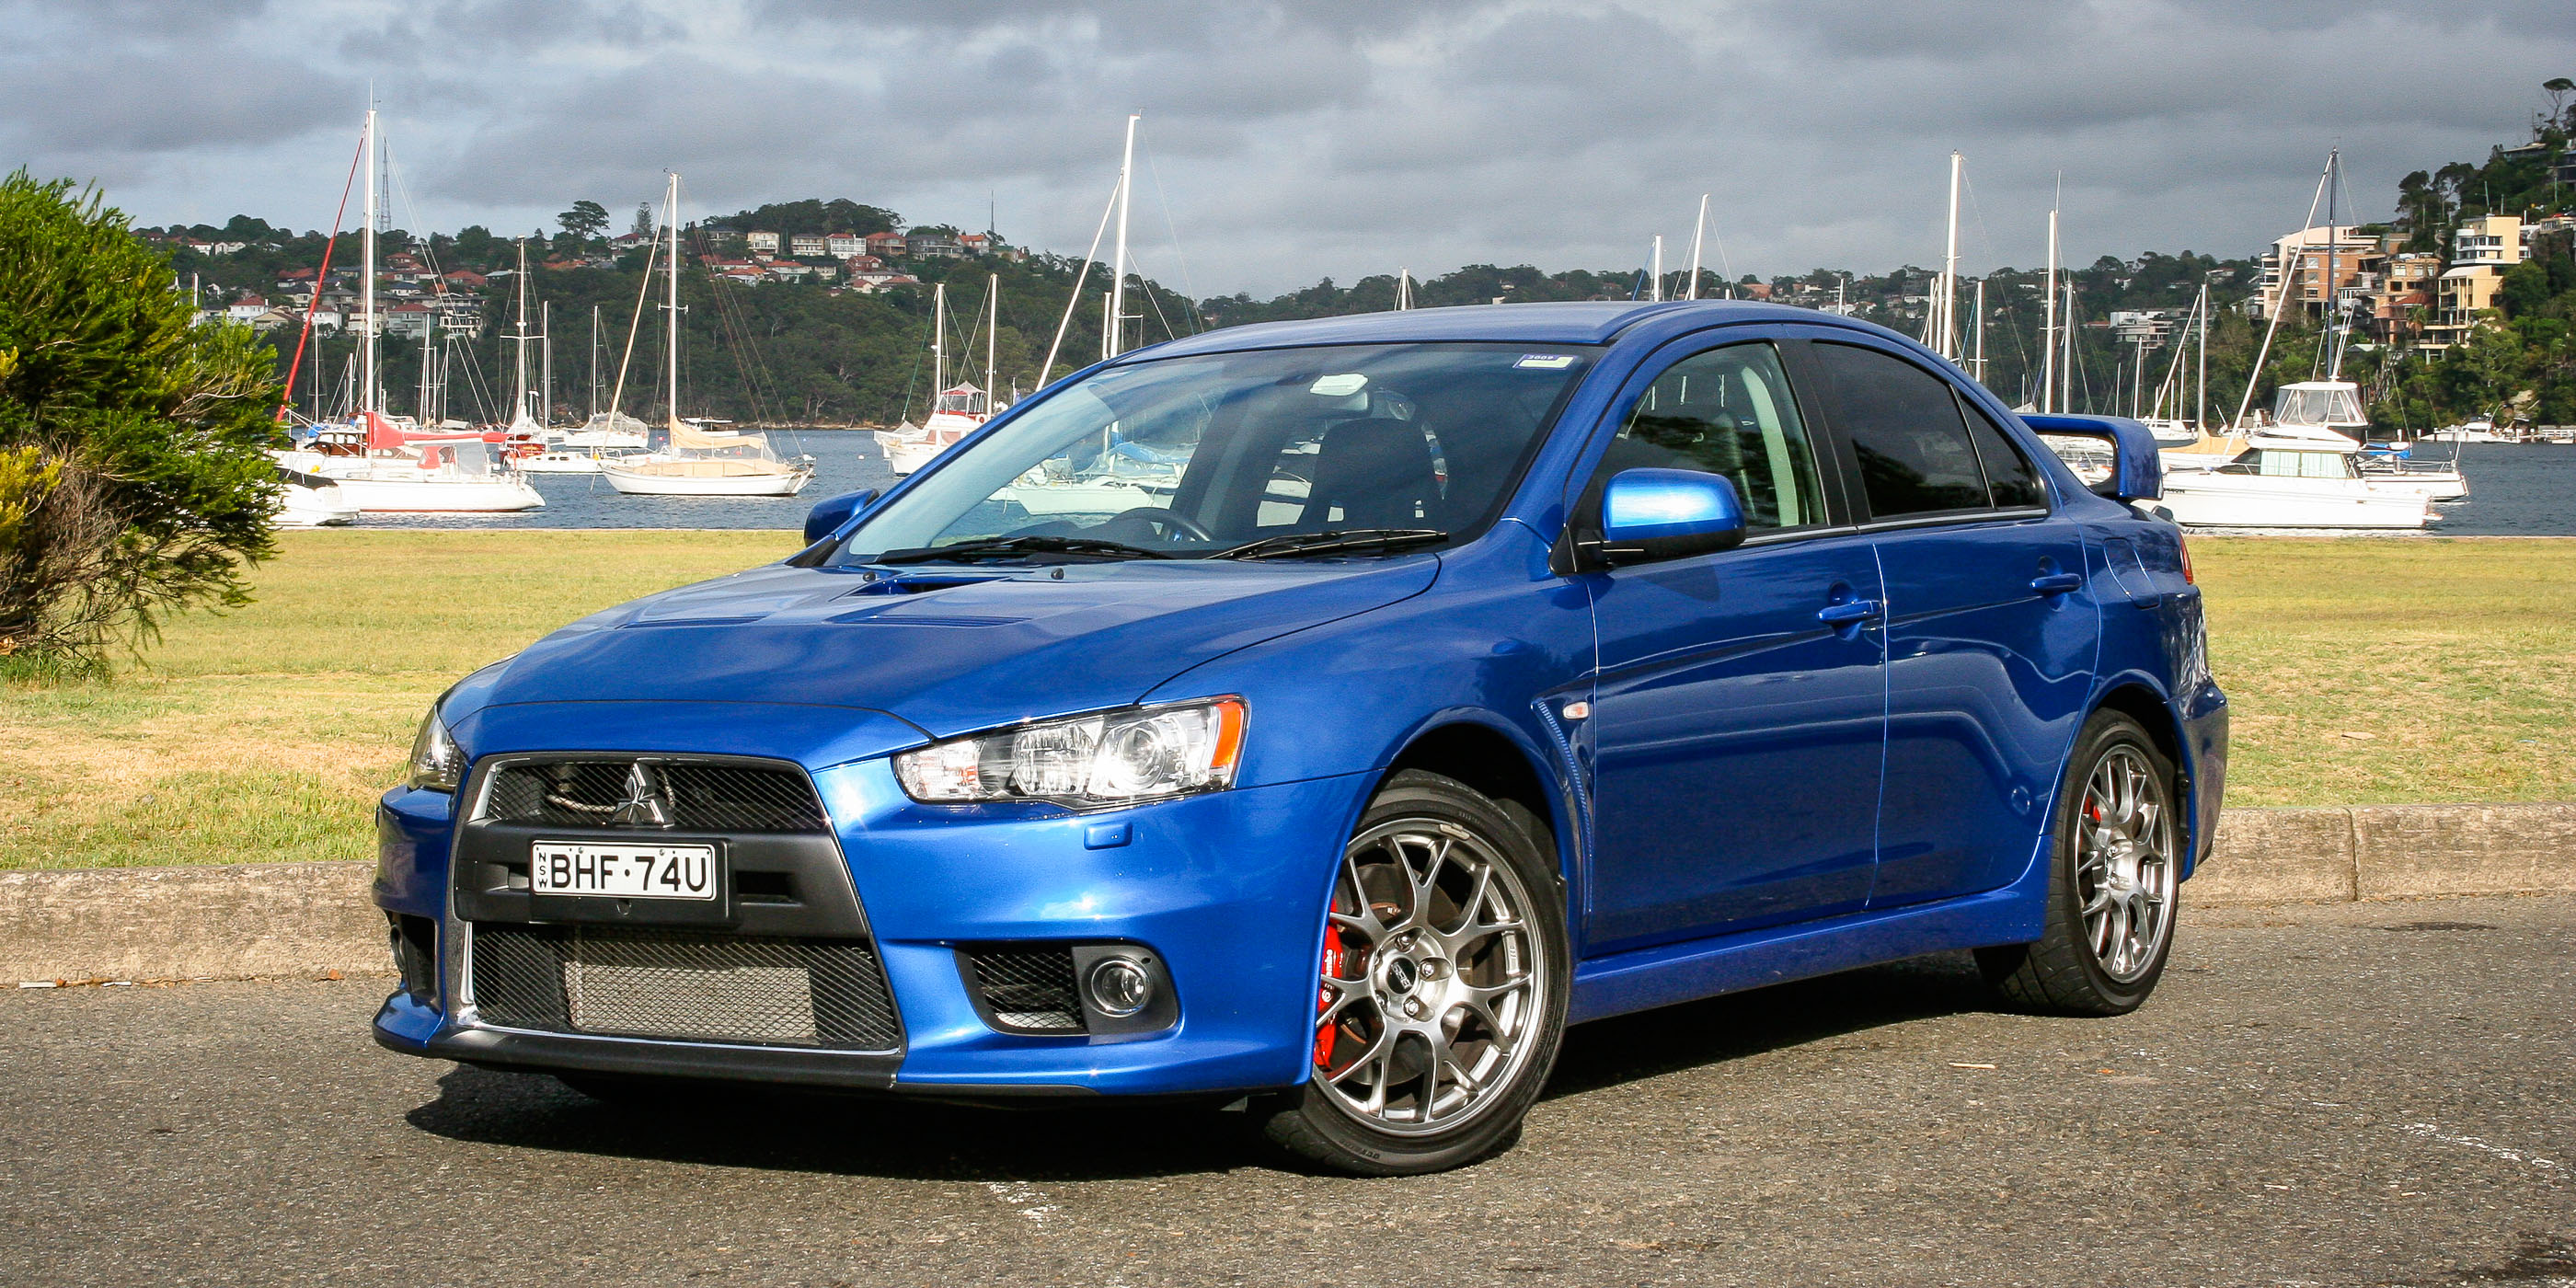 2016 Mitsubishi Lancer Evolution X Review : Final Edition ...